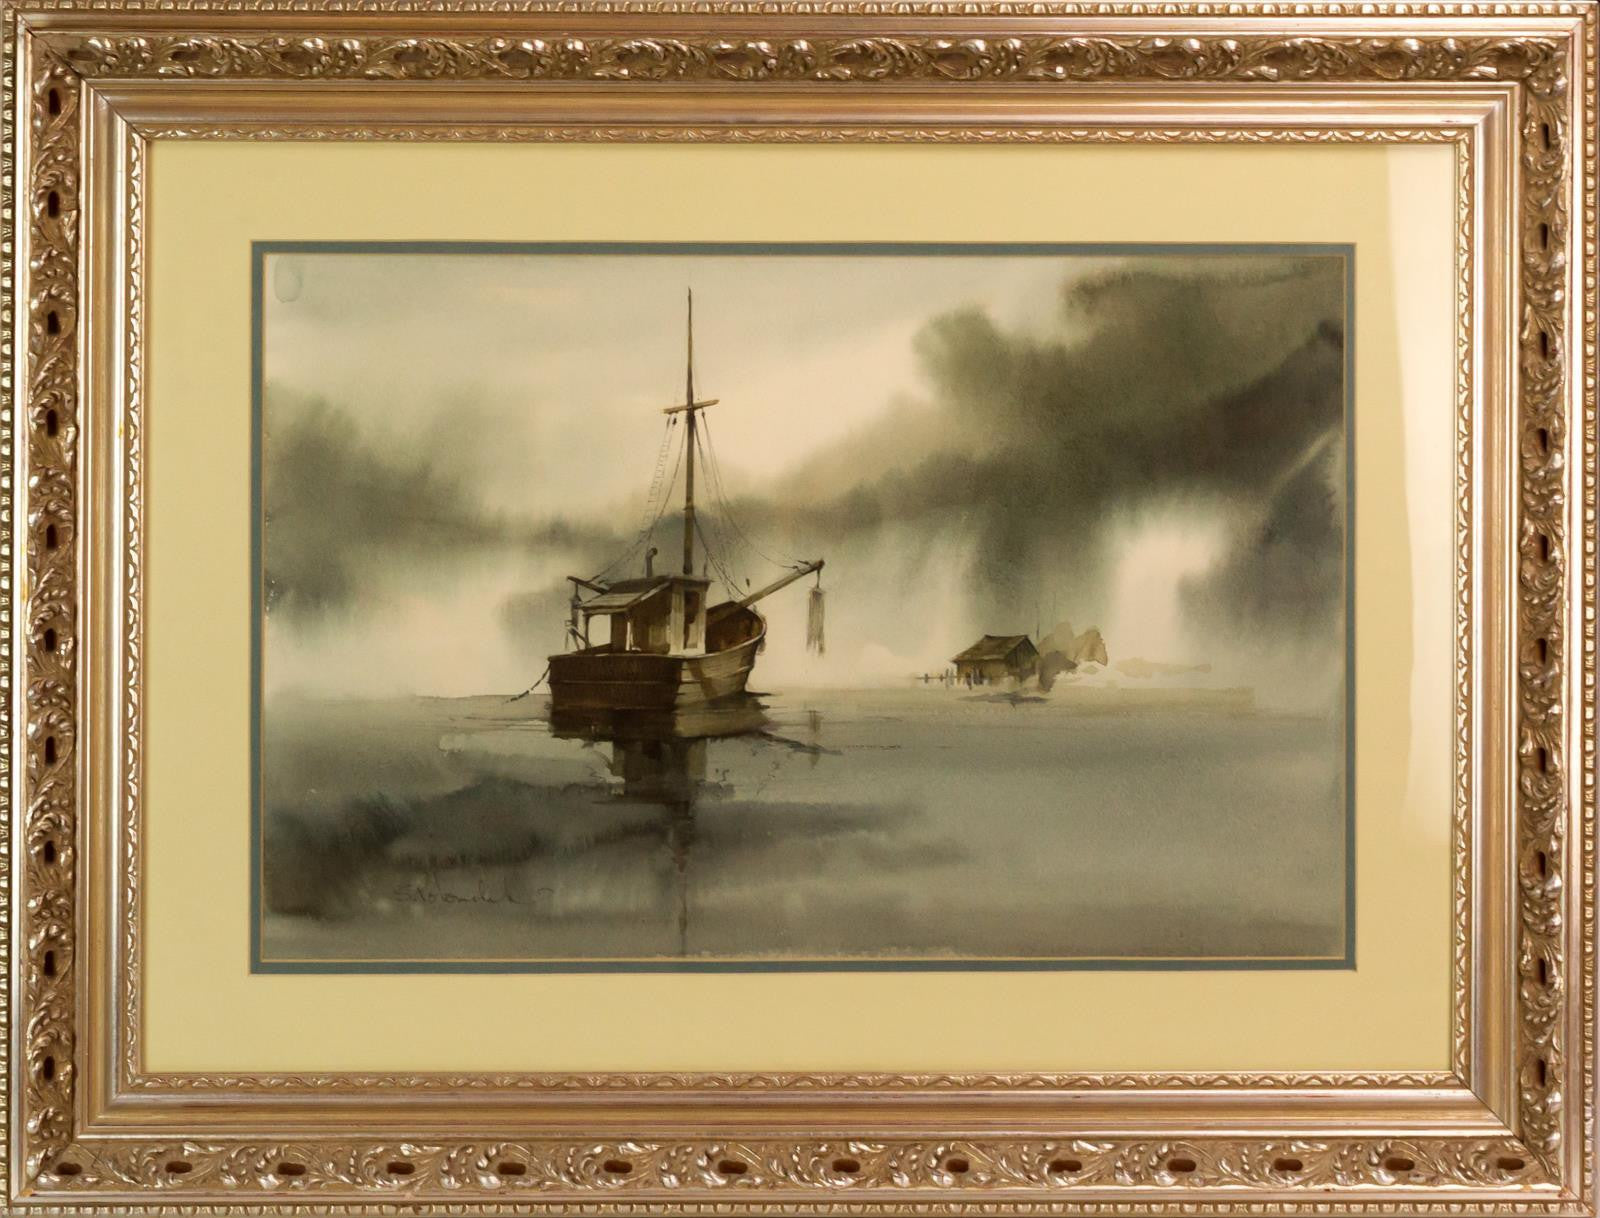 Boat at Sea Watercolor Painting